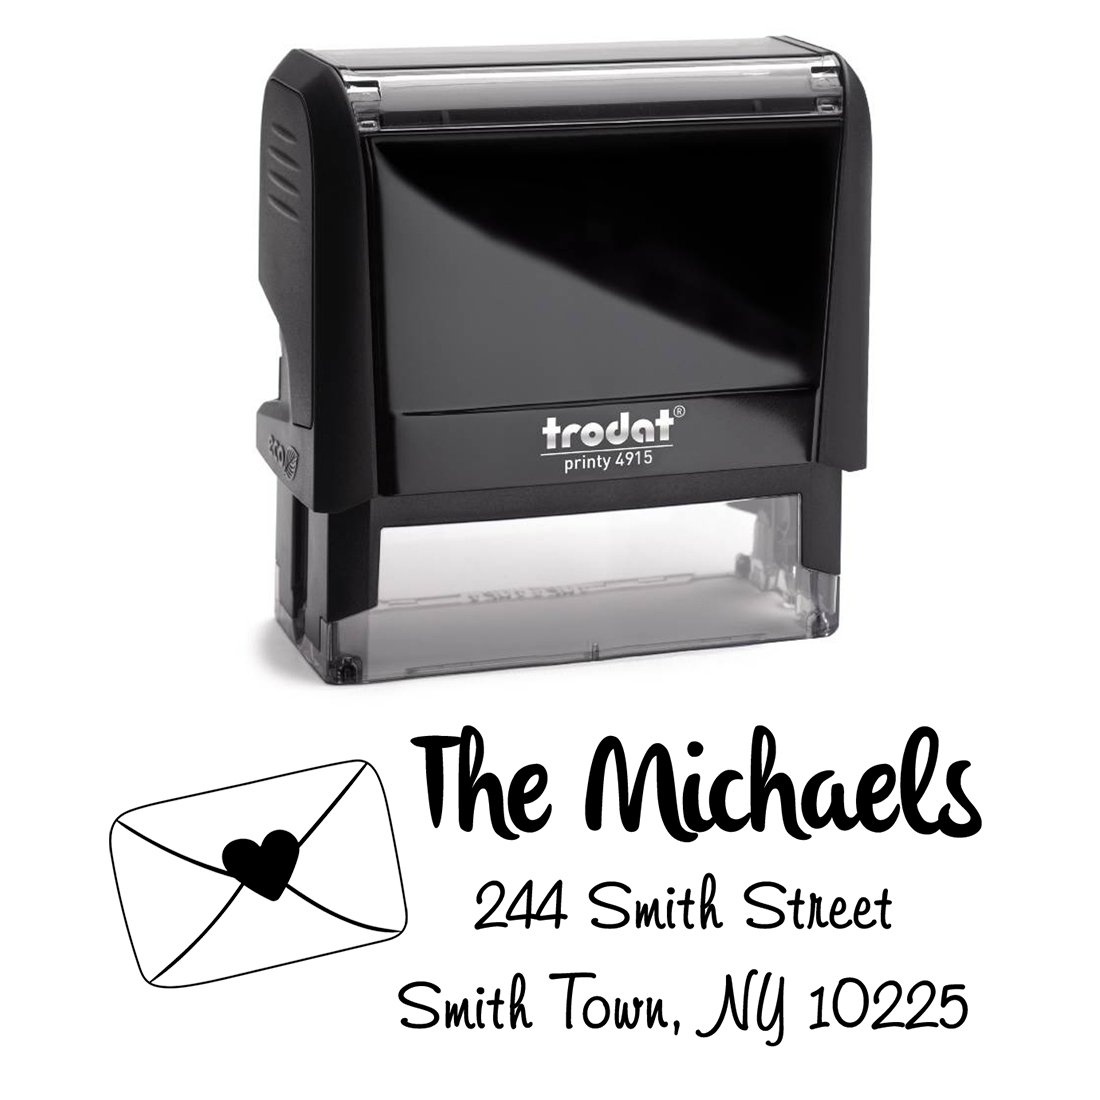 Black Ink, Envelope Sealed with Heart Personalized Custom Self Inking Return Mail Address Stamp – Elegant Gift for; Real Estate Clients, Family, Housewarming, Newlyweds or for Wedding Invitations